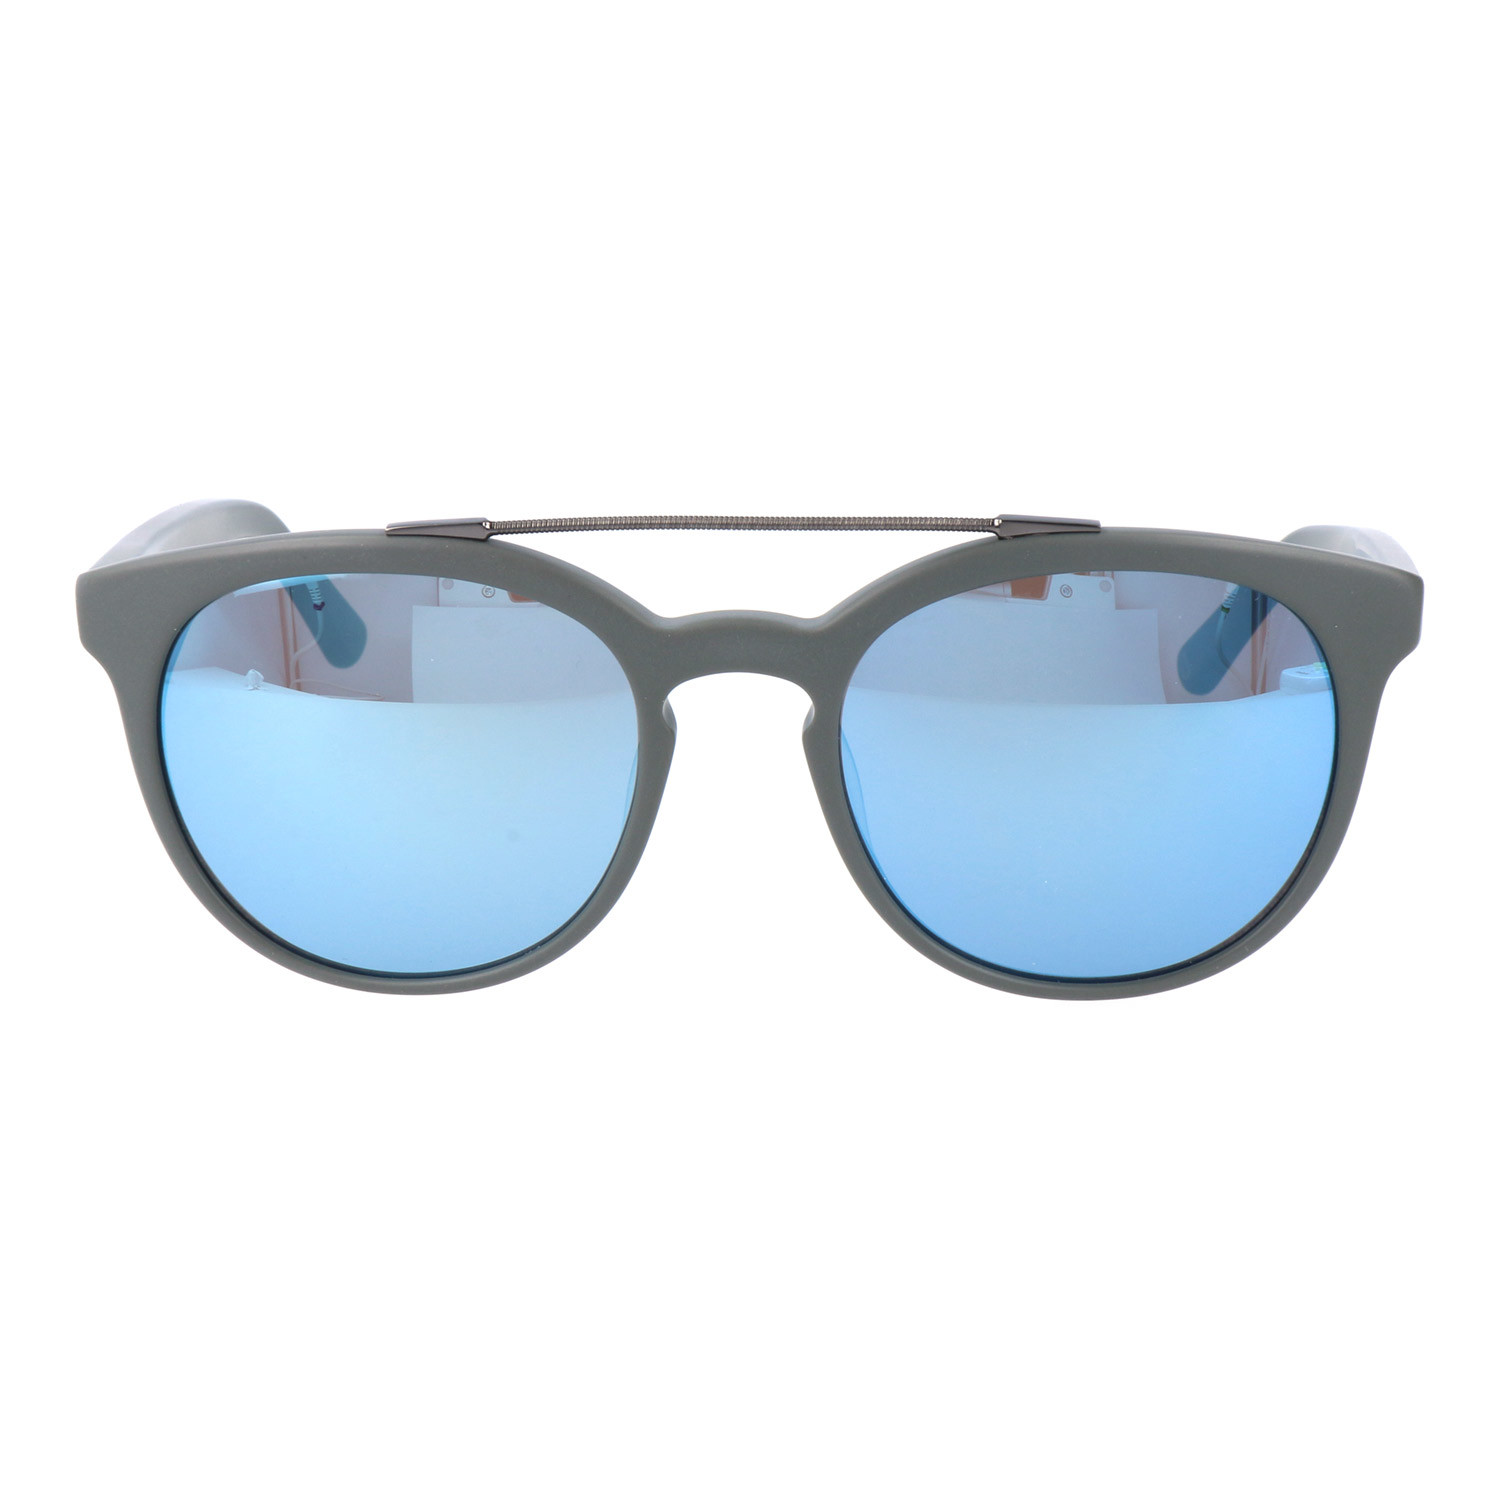 e9caa813d45 Top Bar Rounded Sunglasses    Black + Blue - Web Eyewear - Touch of ...